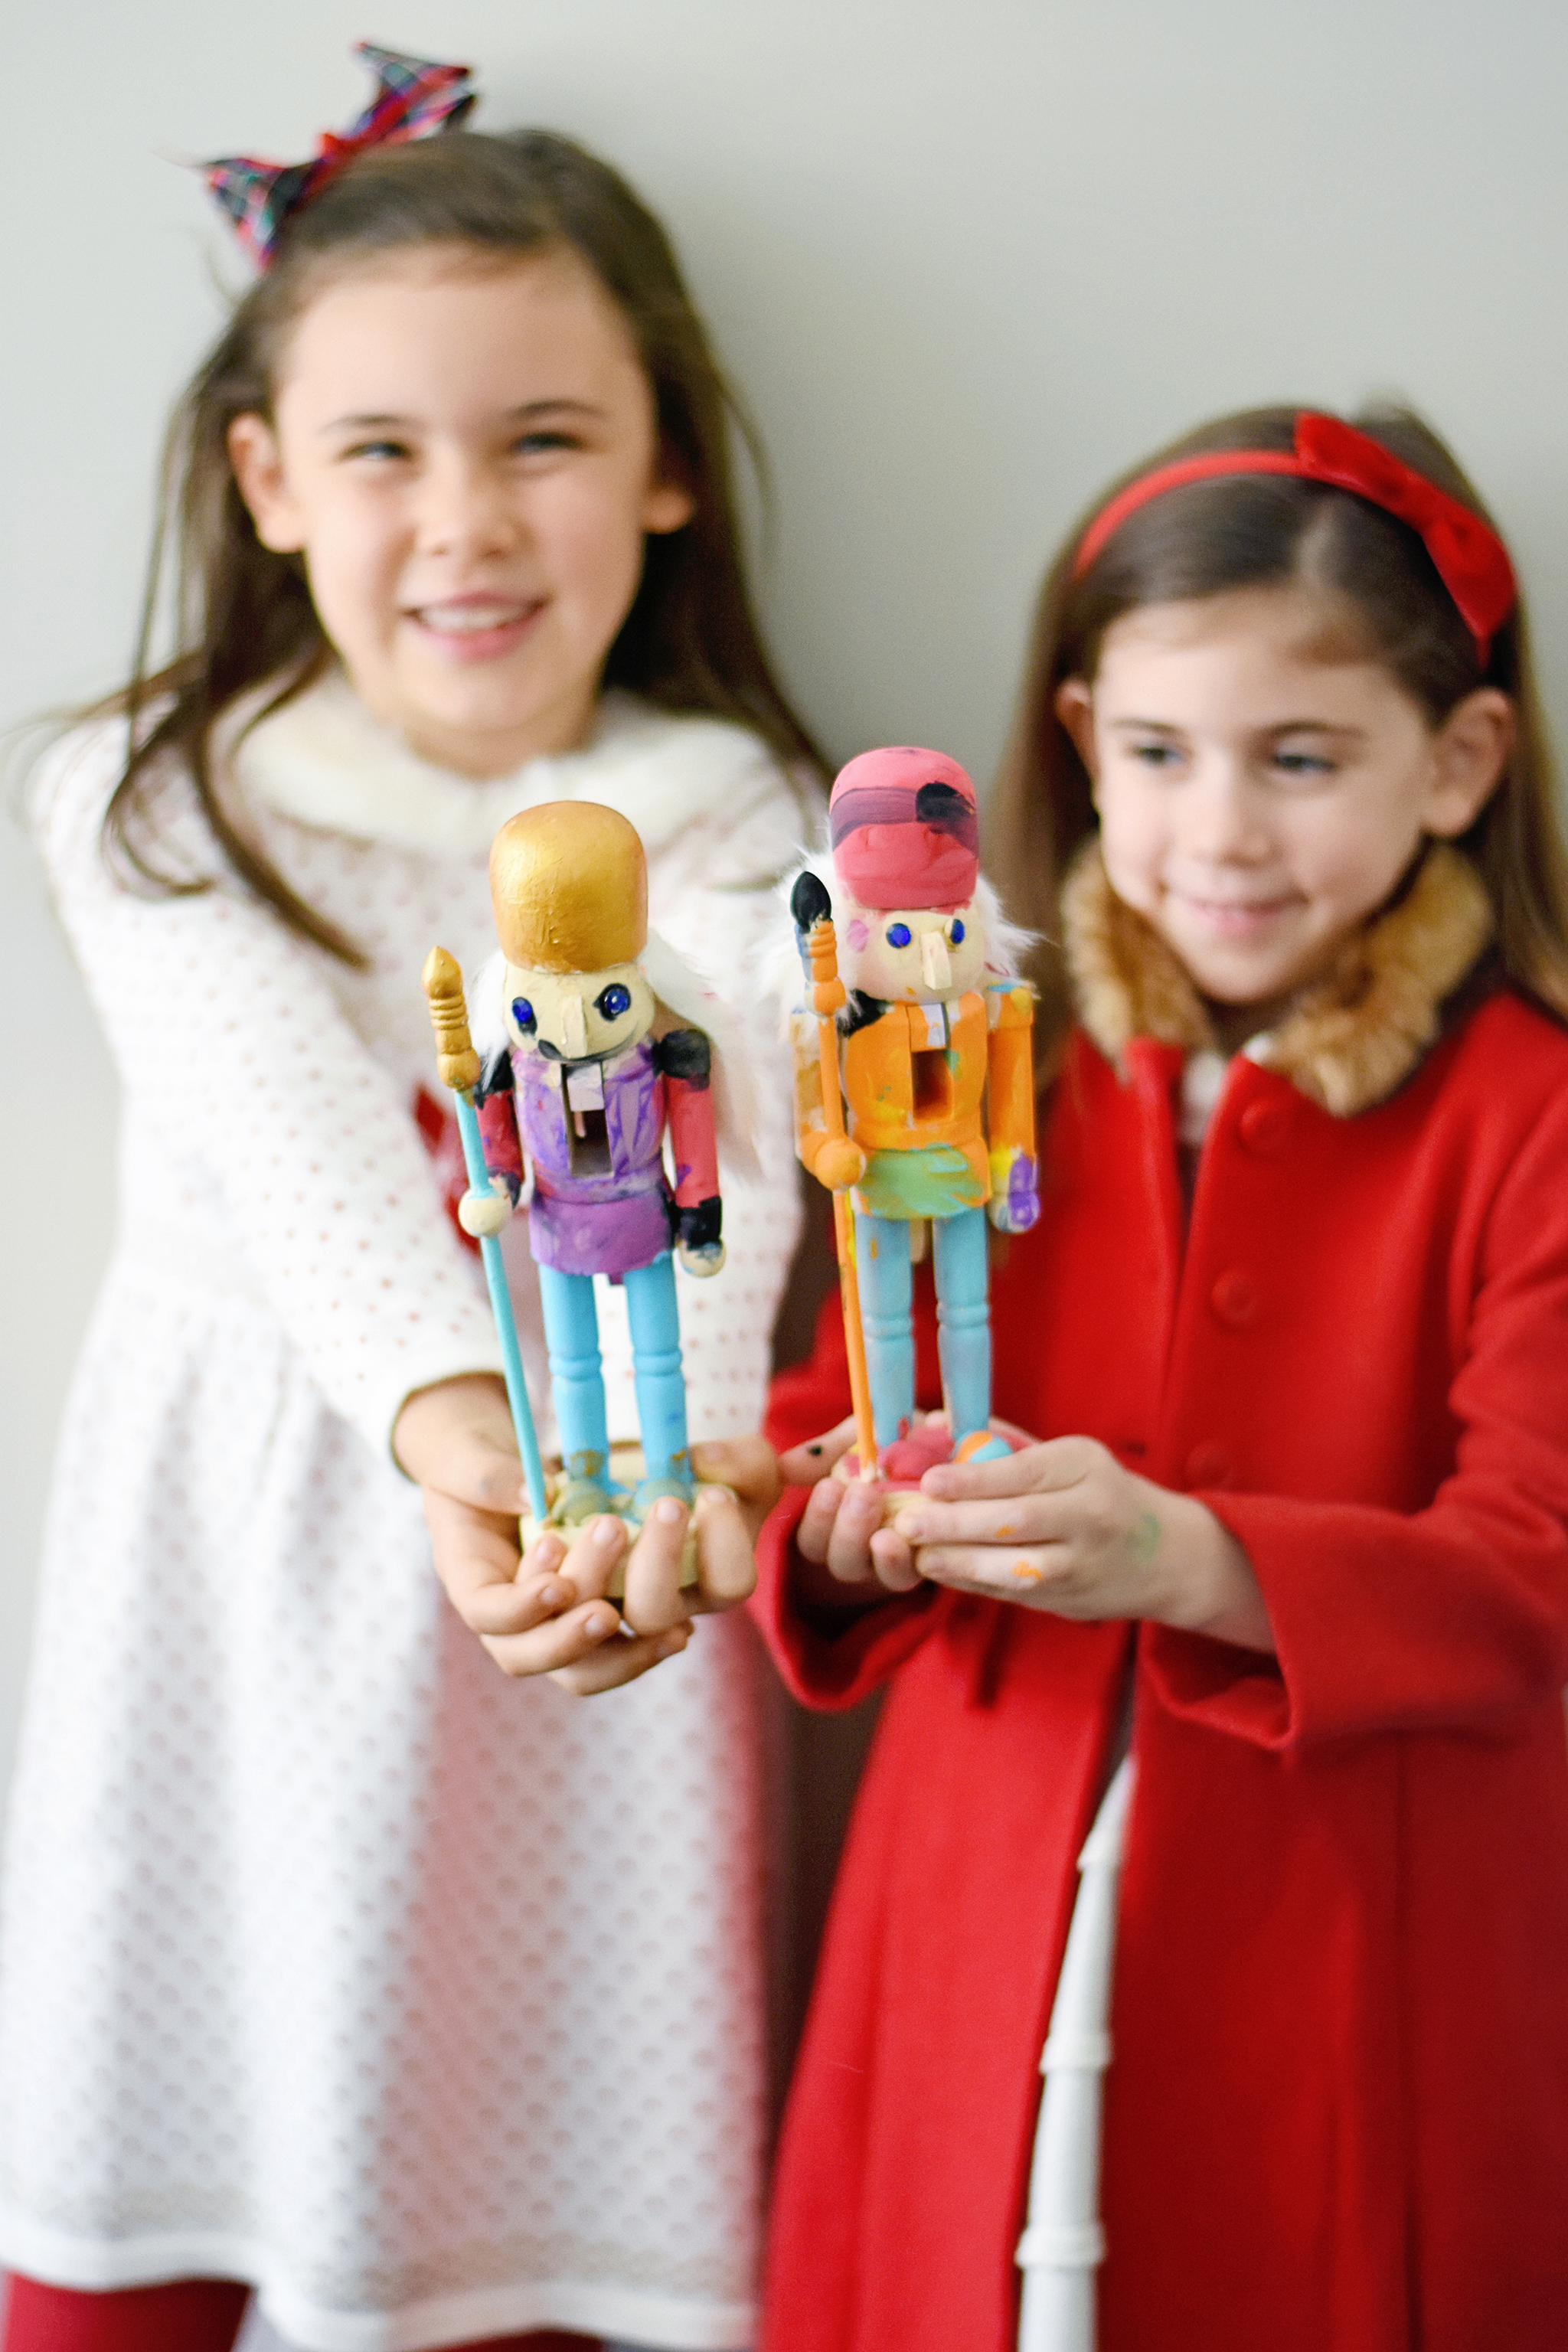 Have fun planning your own Nutcracker Party!